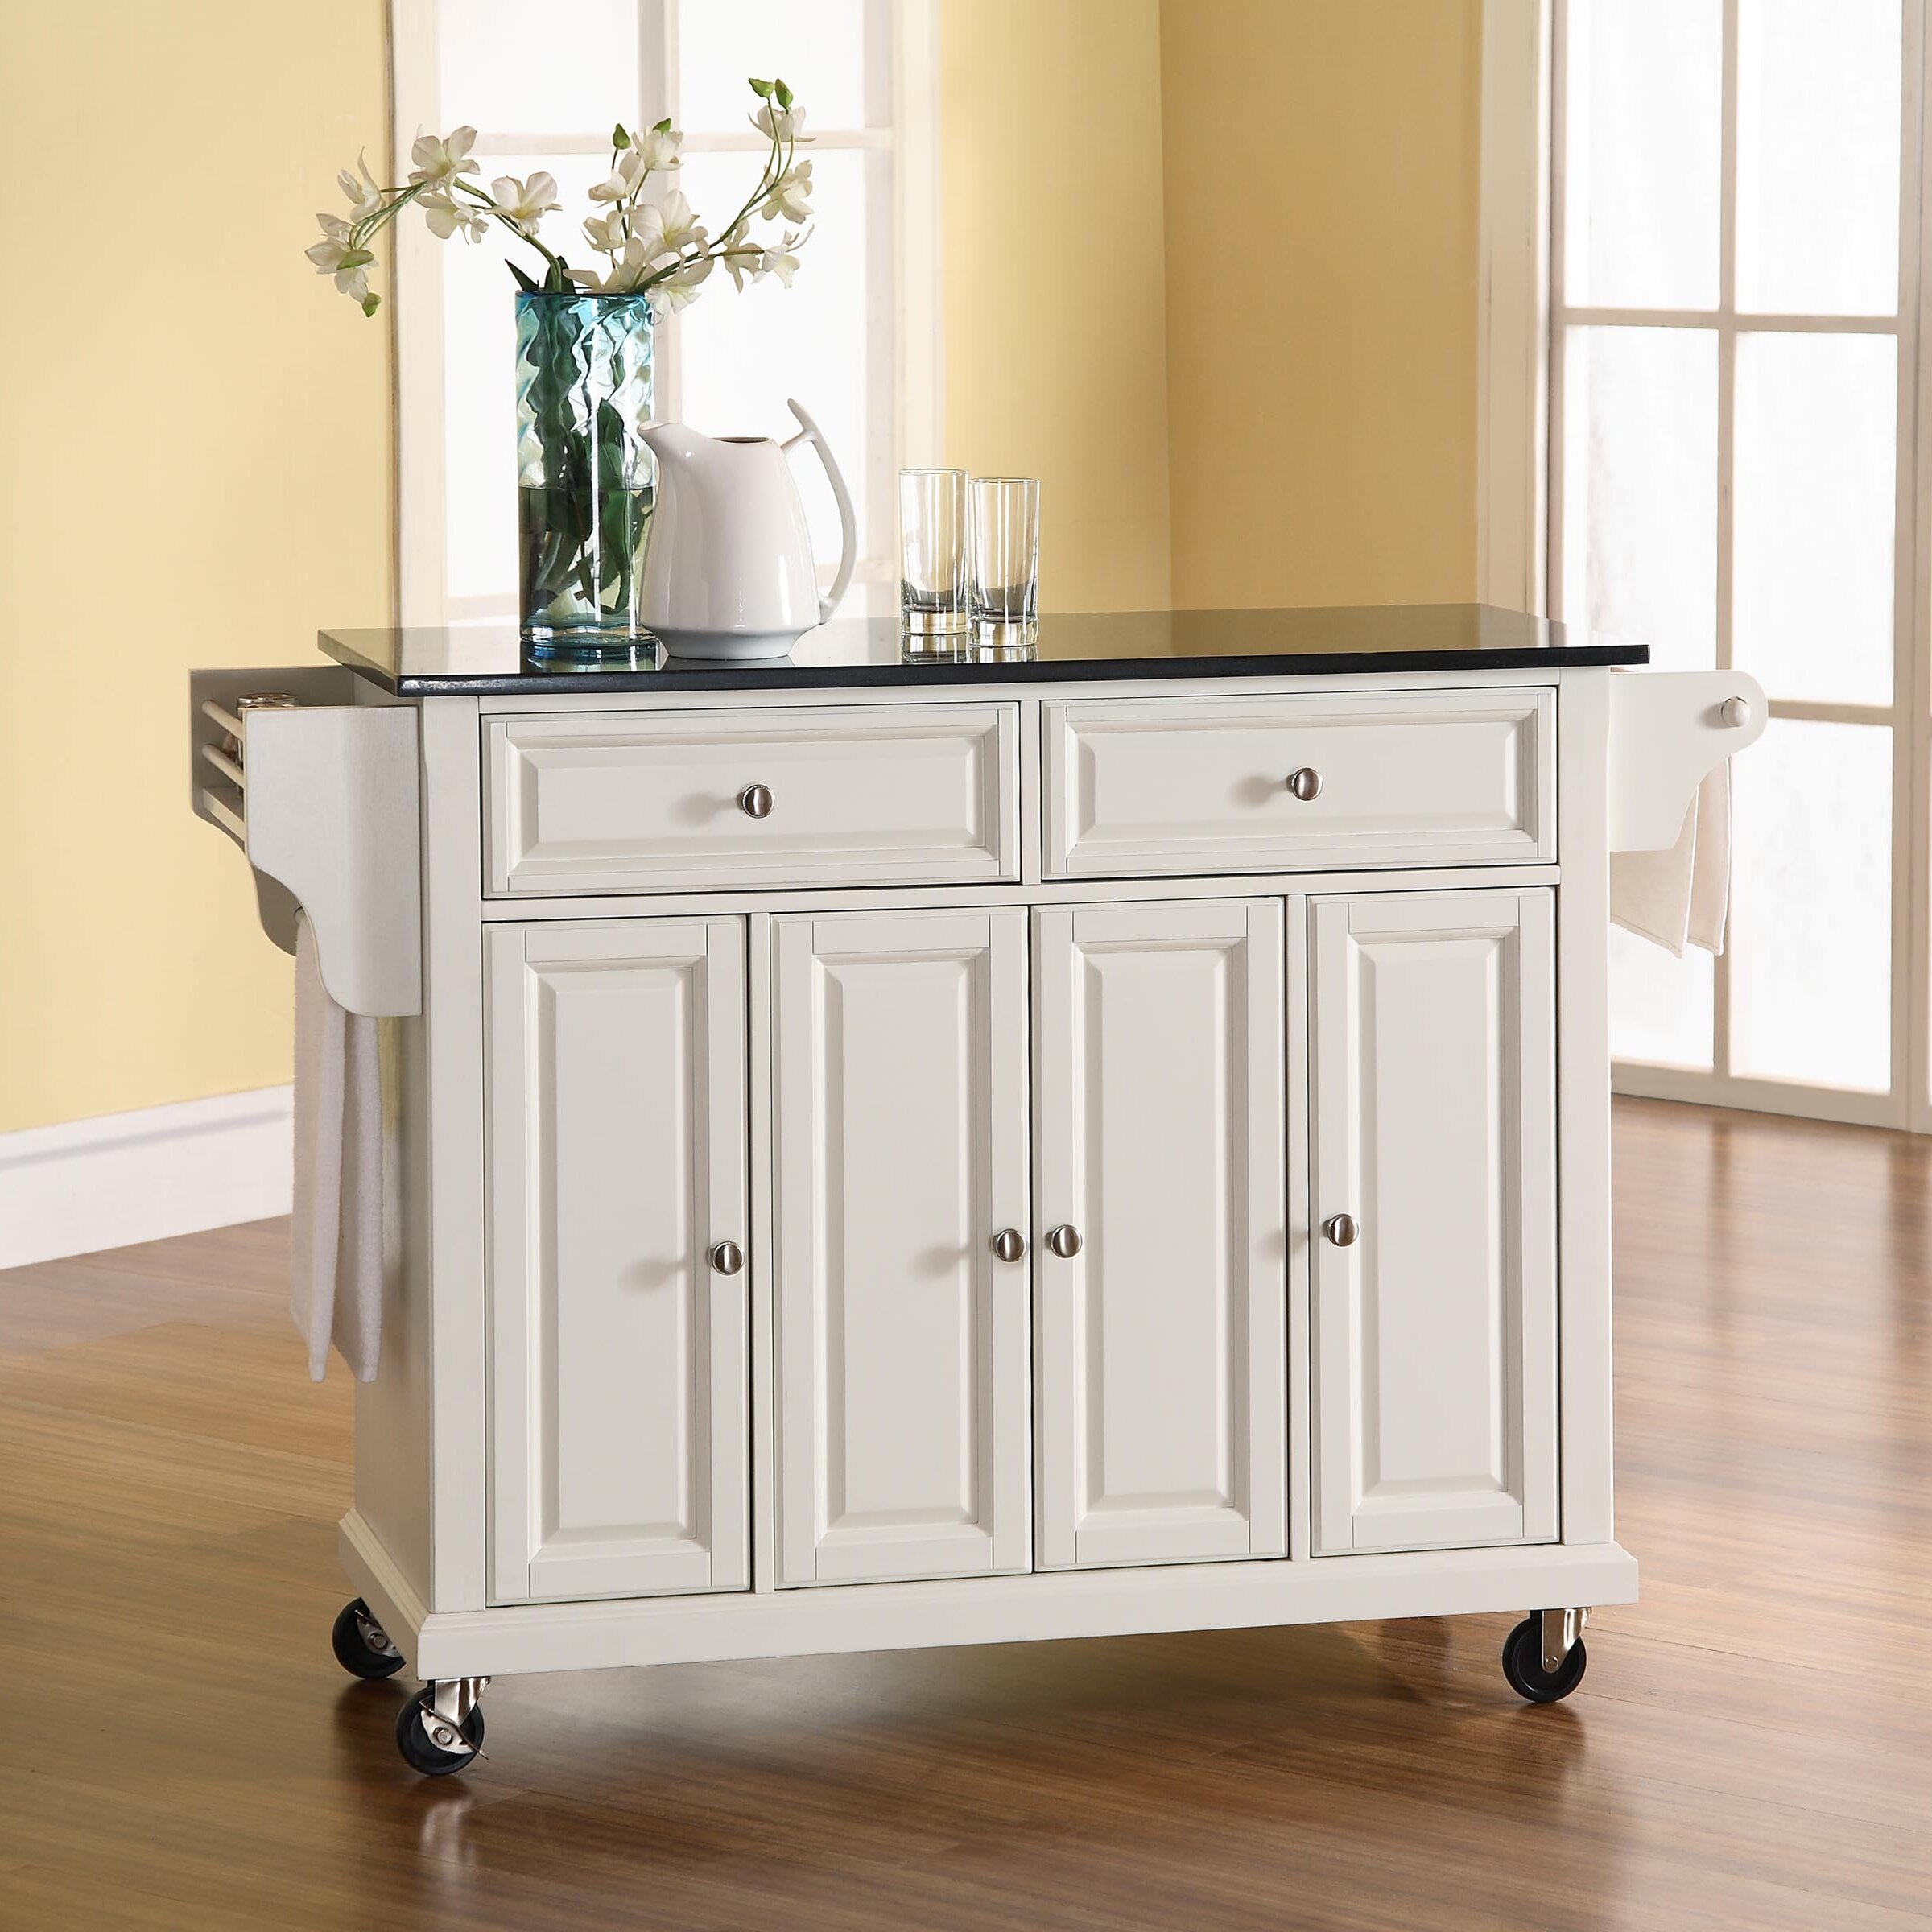 Kitchen Island With Granite Top: Darby Home Co Pottstown Kitchen Island With Granite Top